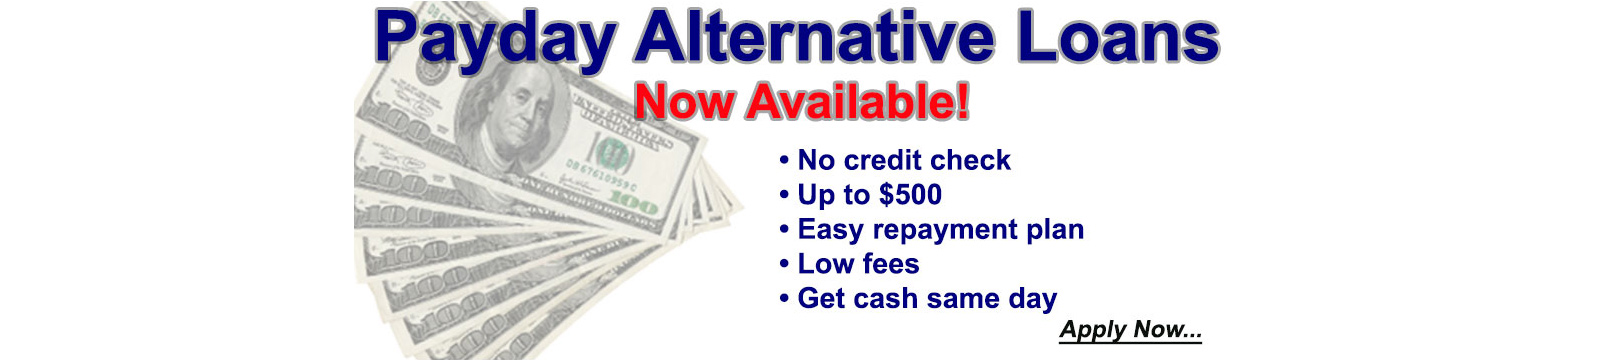 Payday Alternate Loans now available.